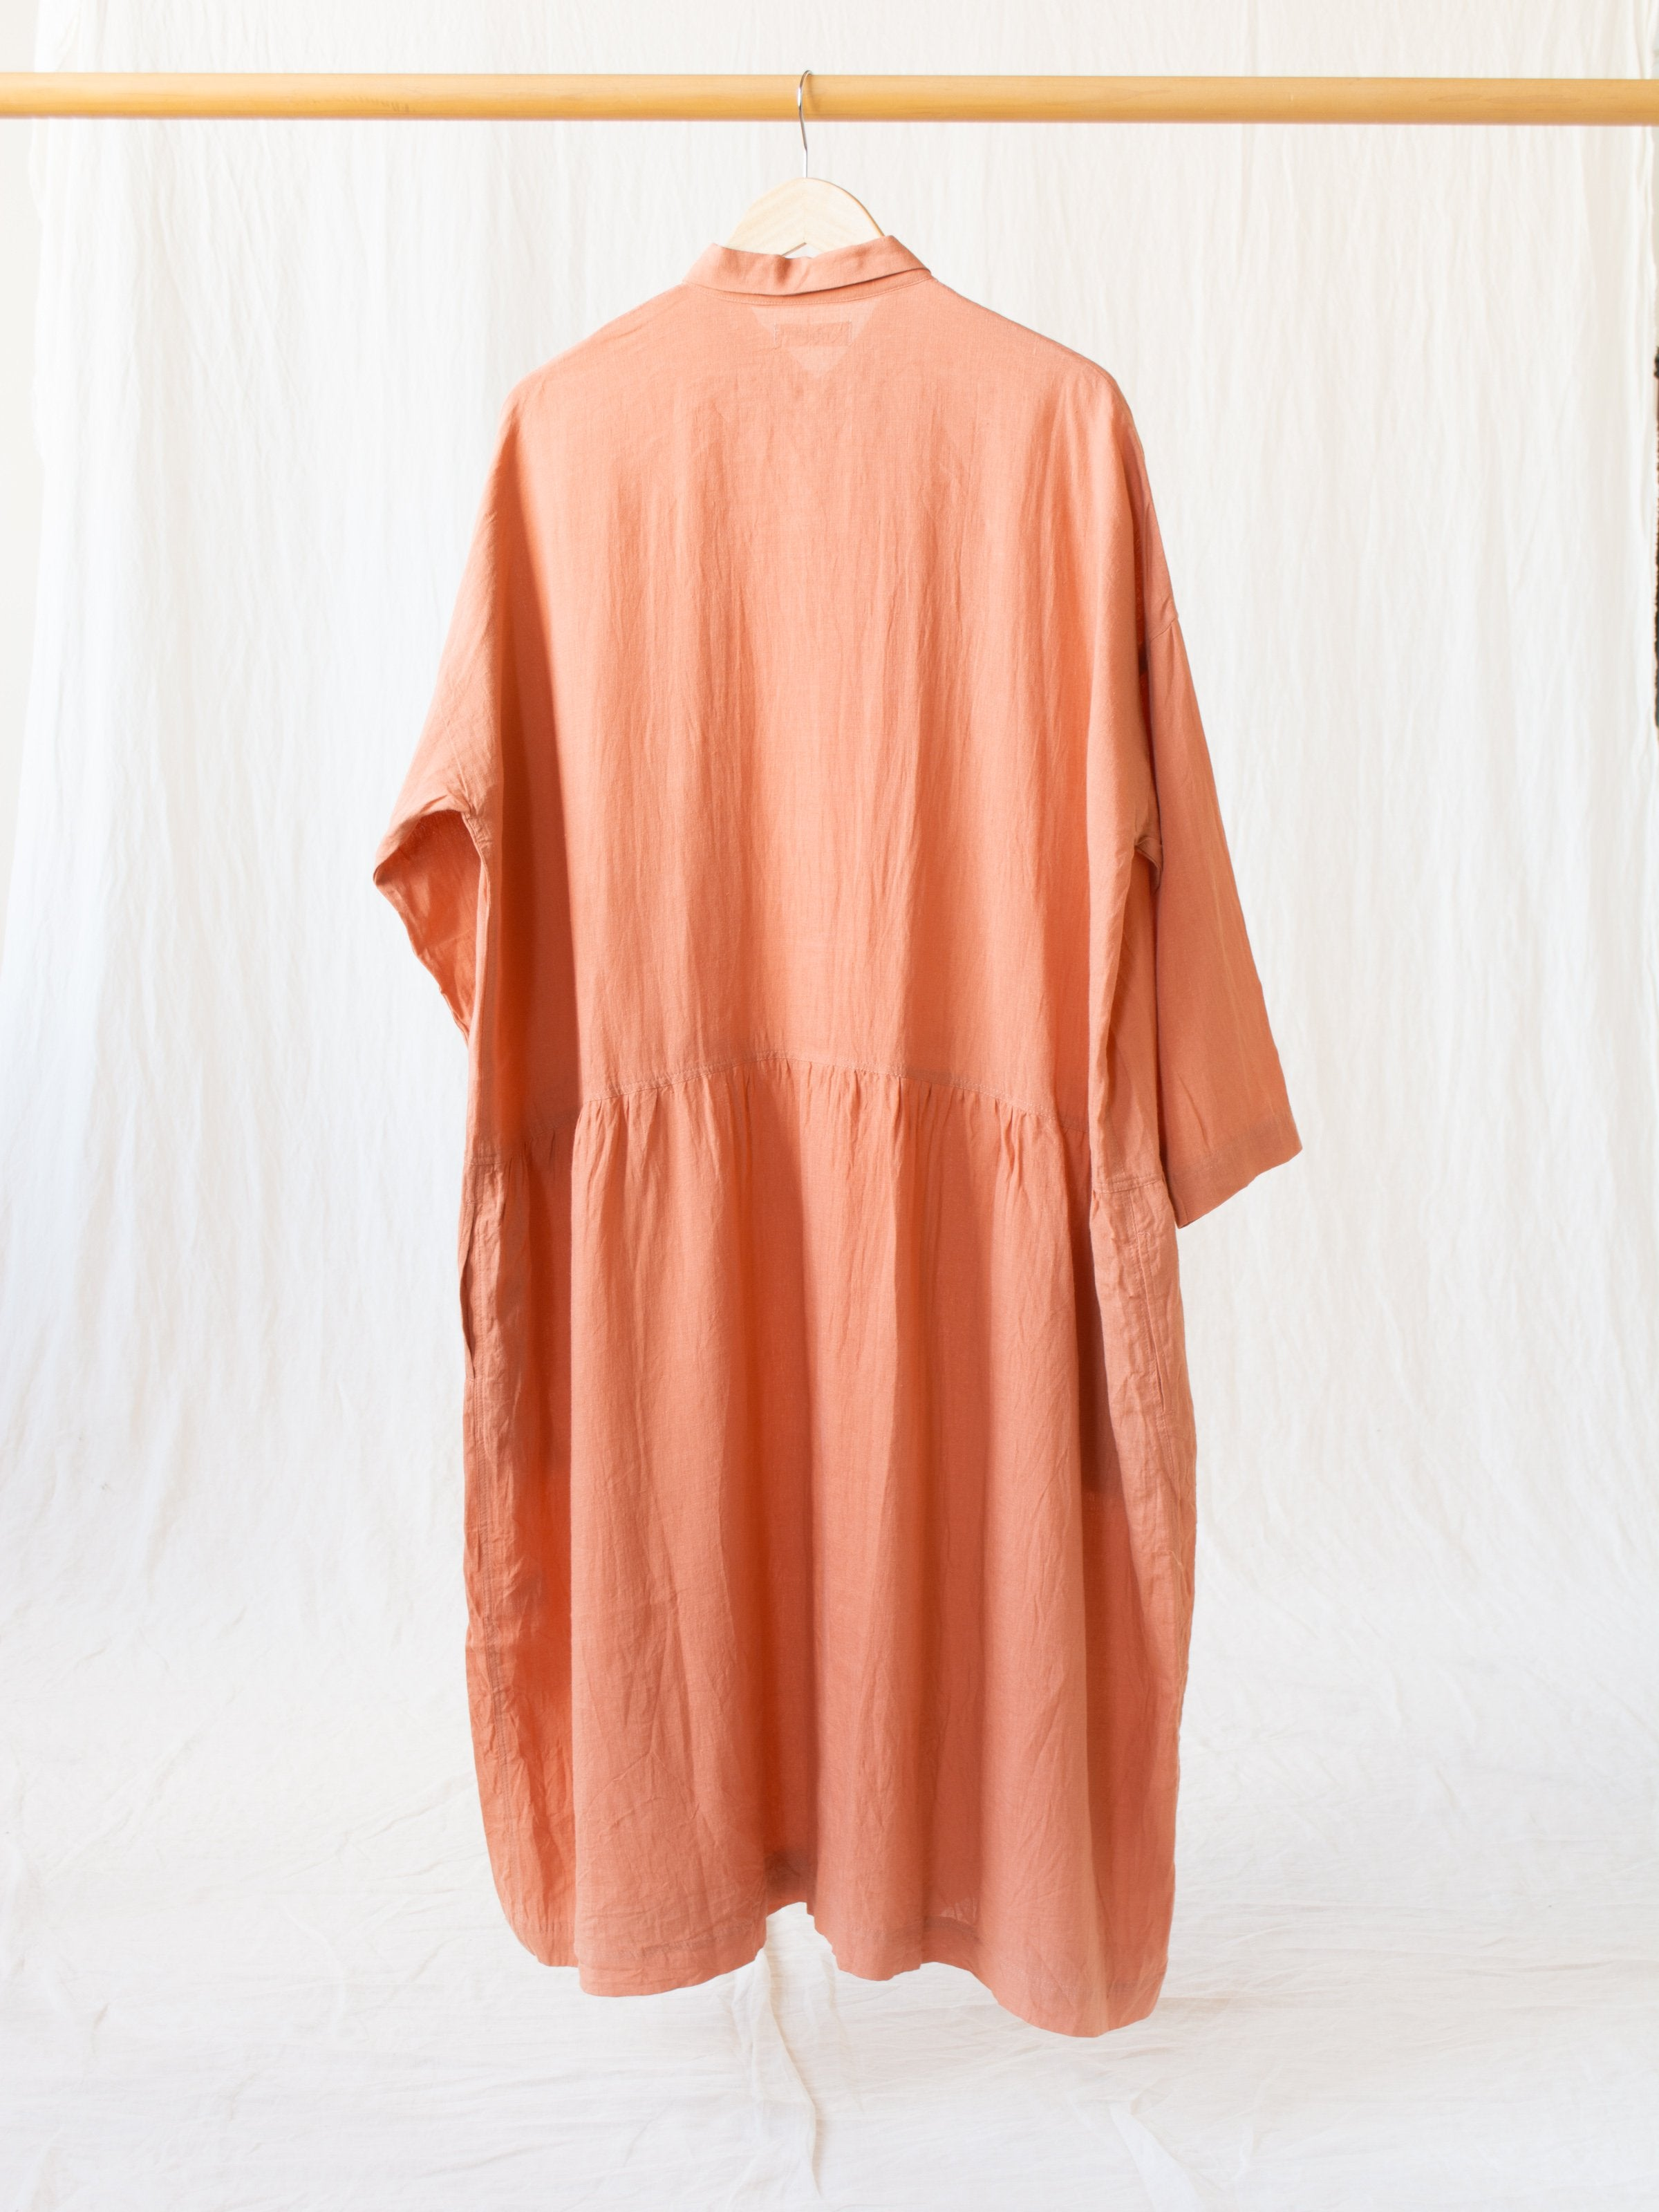 Namu Shop - Ichi Antiquites Linen Gather Dress - Coral